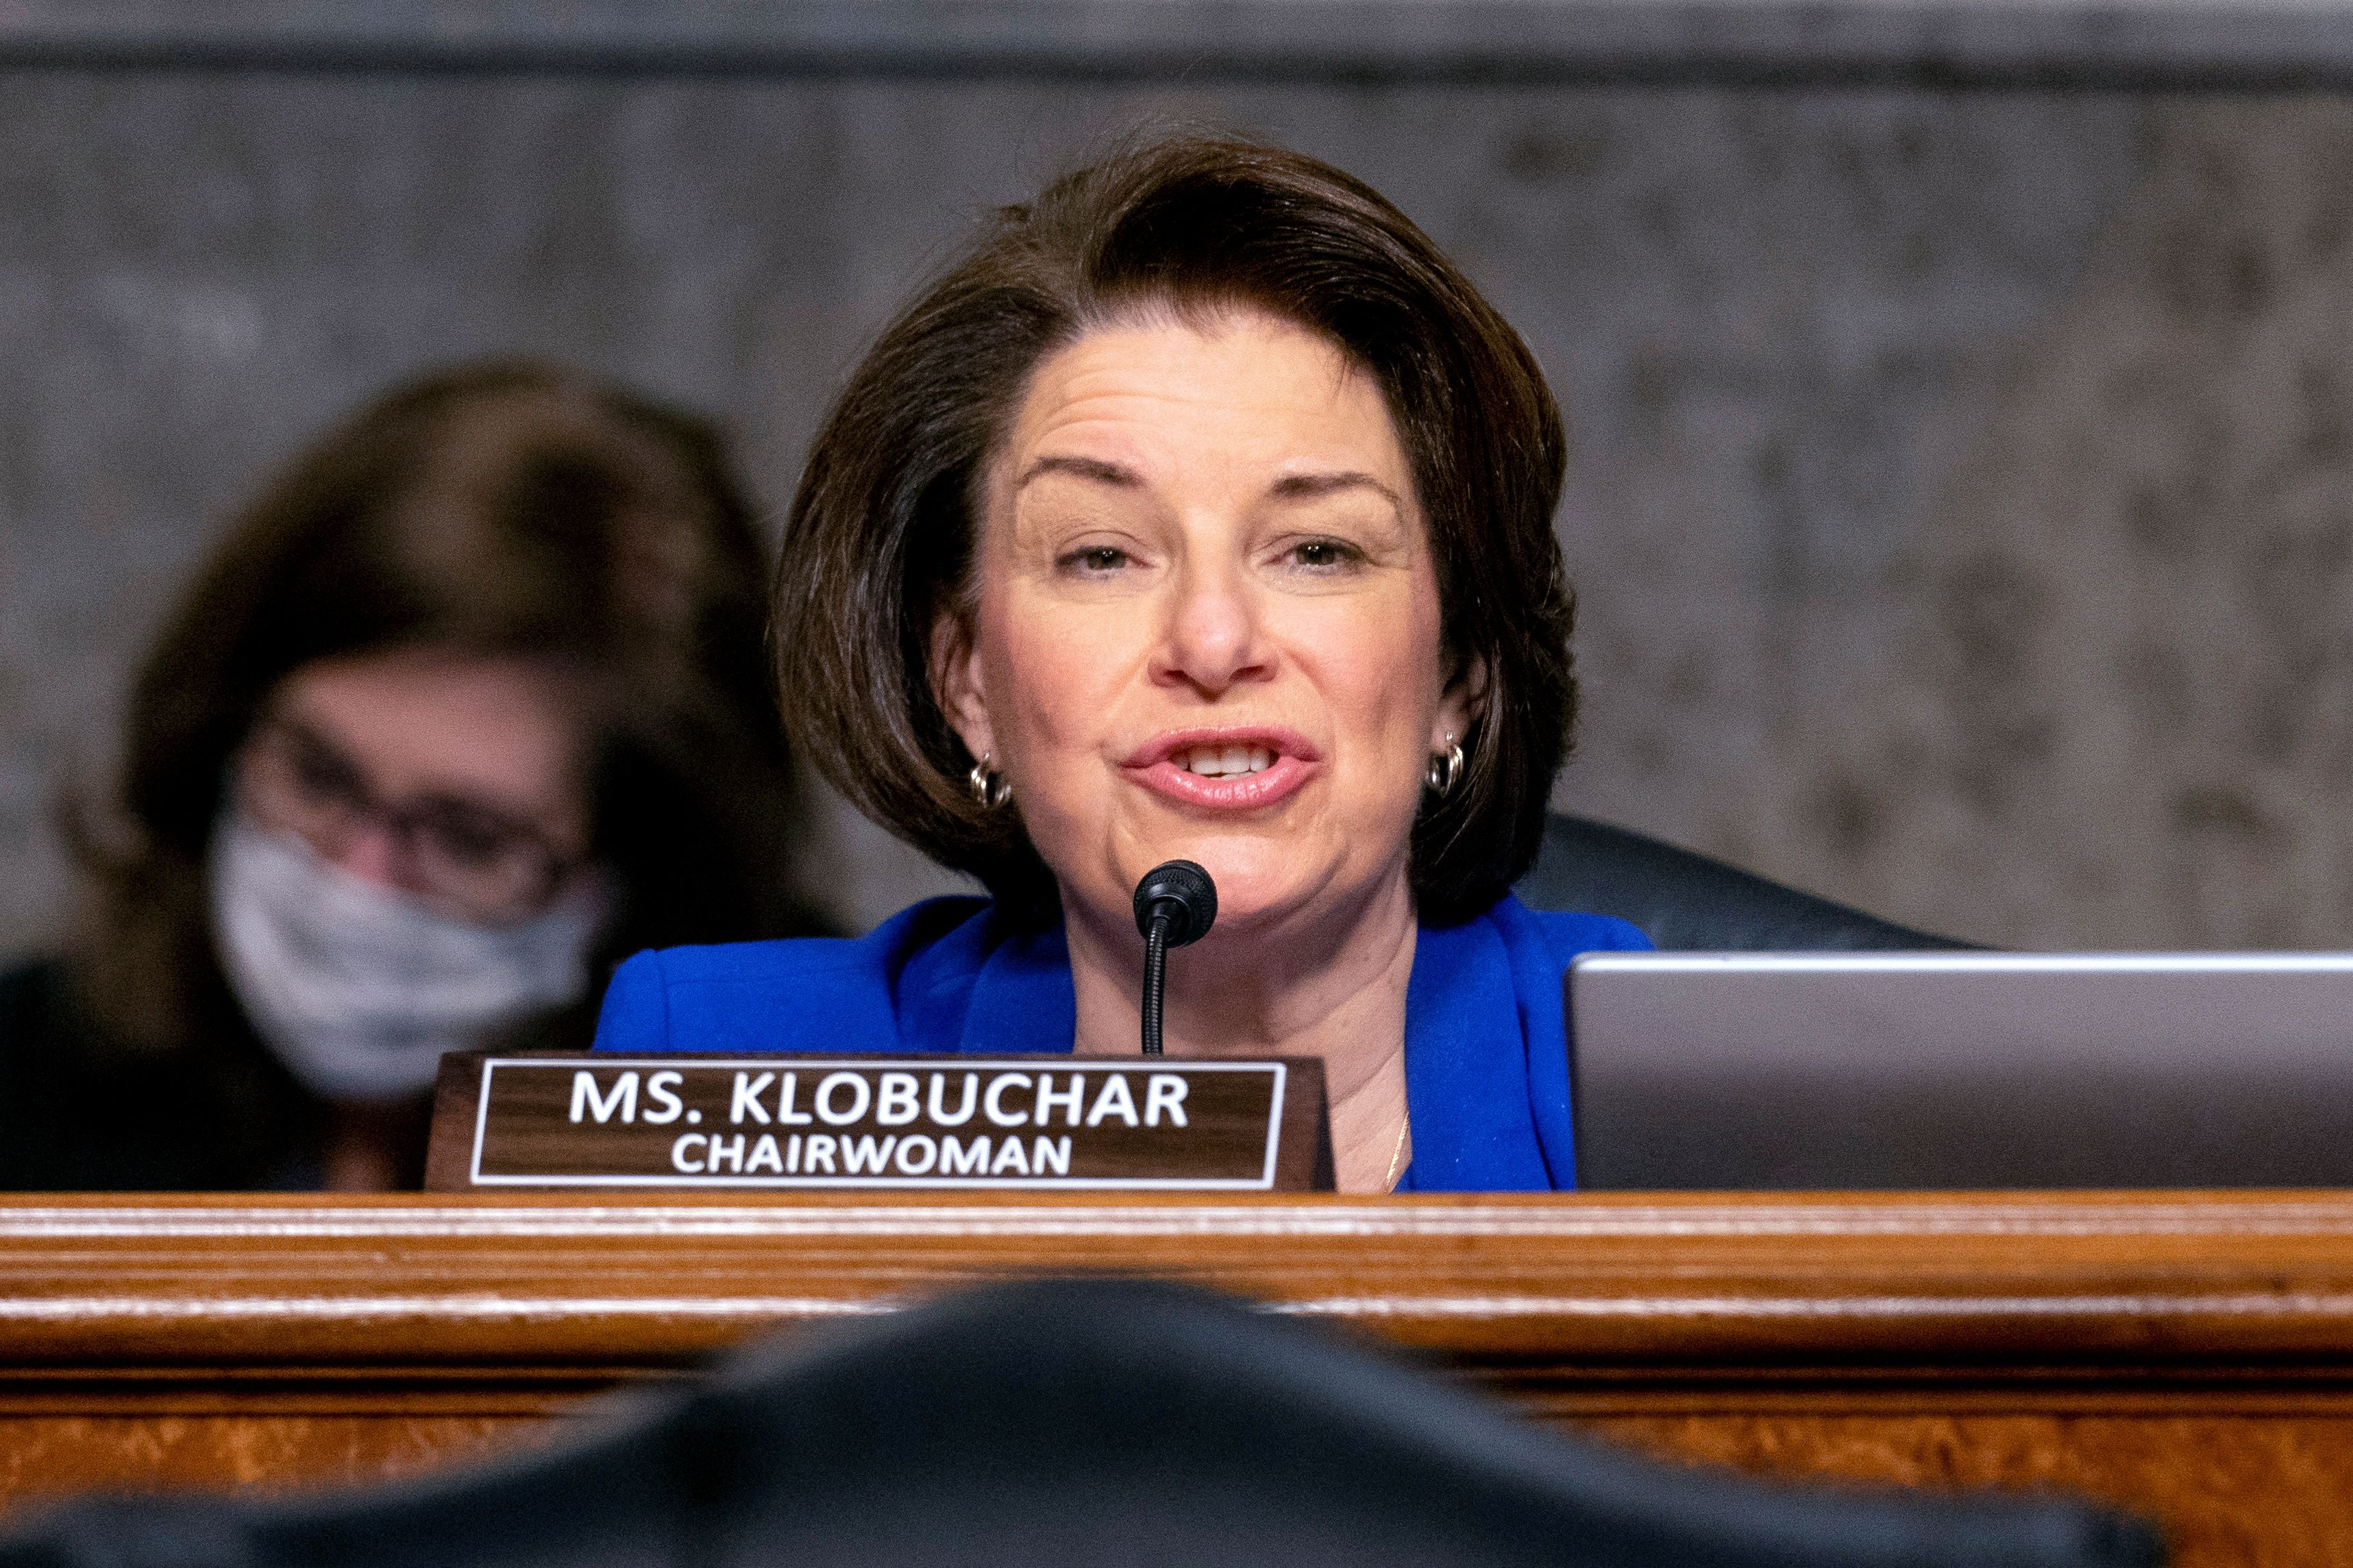 PHChairwoman Amy Klobuchar, D-Minn., speaks at the start of a Senate Homeland Security and Governmental Affairs & Senate Rules and Administration joint hearing on Capitol Hill, Washington, U.S., February 23, 2021, to examine the January 6th attack on the Capitol. Andrew Harnik/Pool via REUTERS